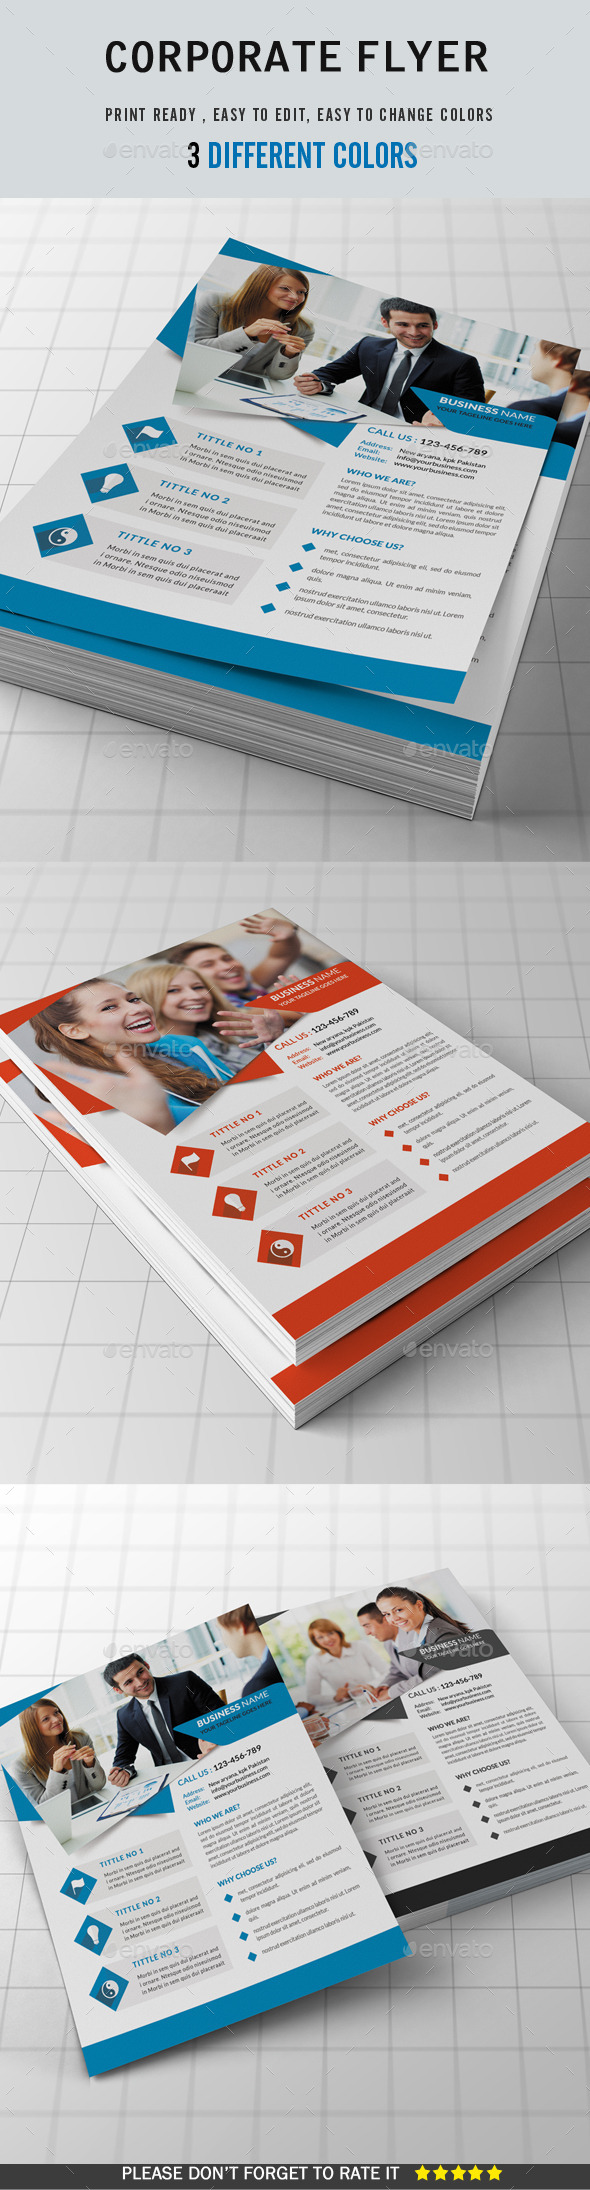 GraphicRiver Corporate Flyer 8876265